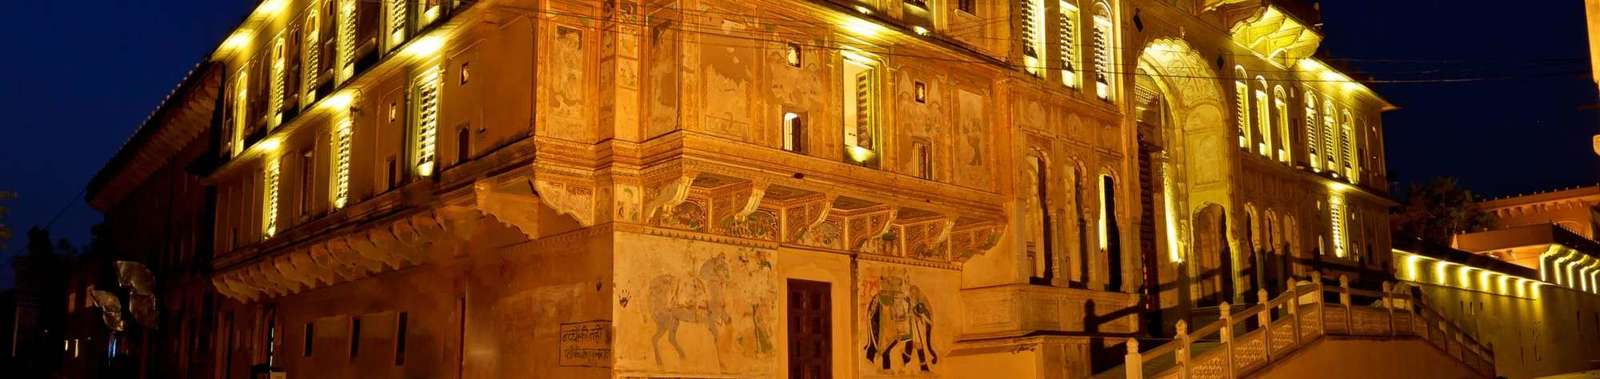 In rural Rajasthan stay at Vivaana, Shekhawati's finest converted-hotel